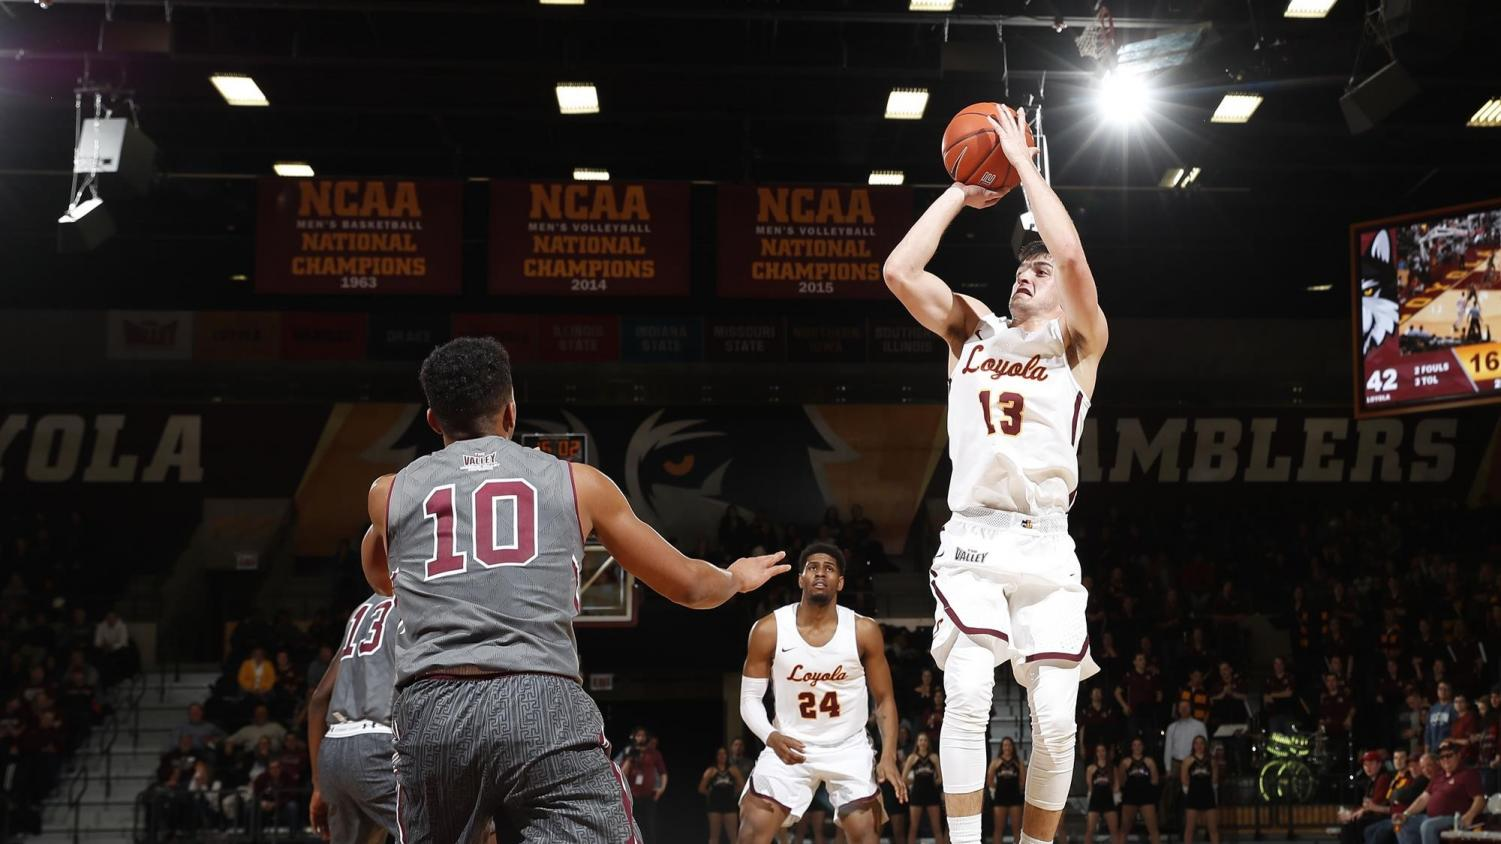 Loyola redshirt junior guard Clayton Custer (13) earned Missouri Valley Conference Player of the Year honors. Custer leads the Ramblers in scoring, 3-point percentage, assists and steals.